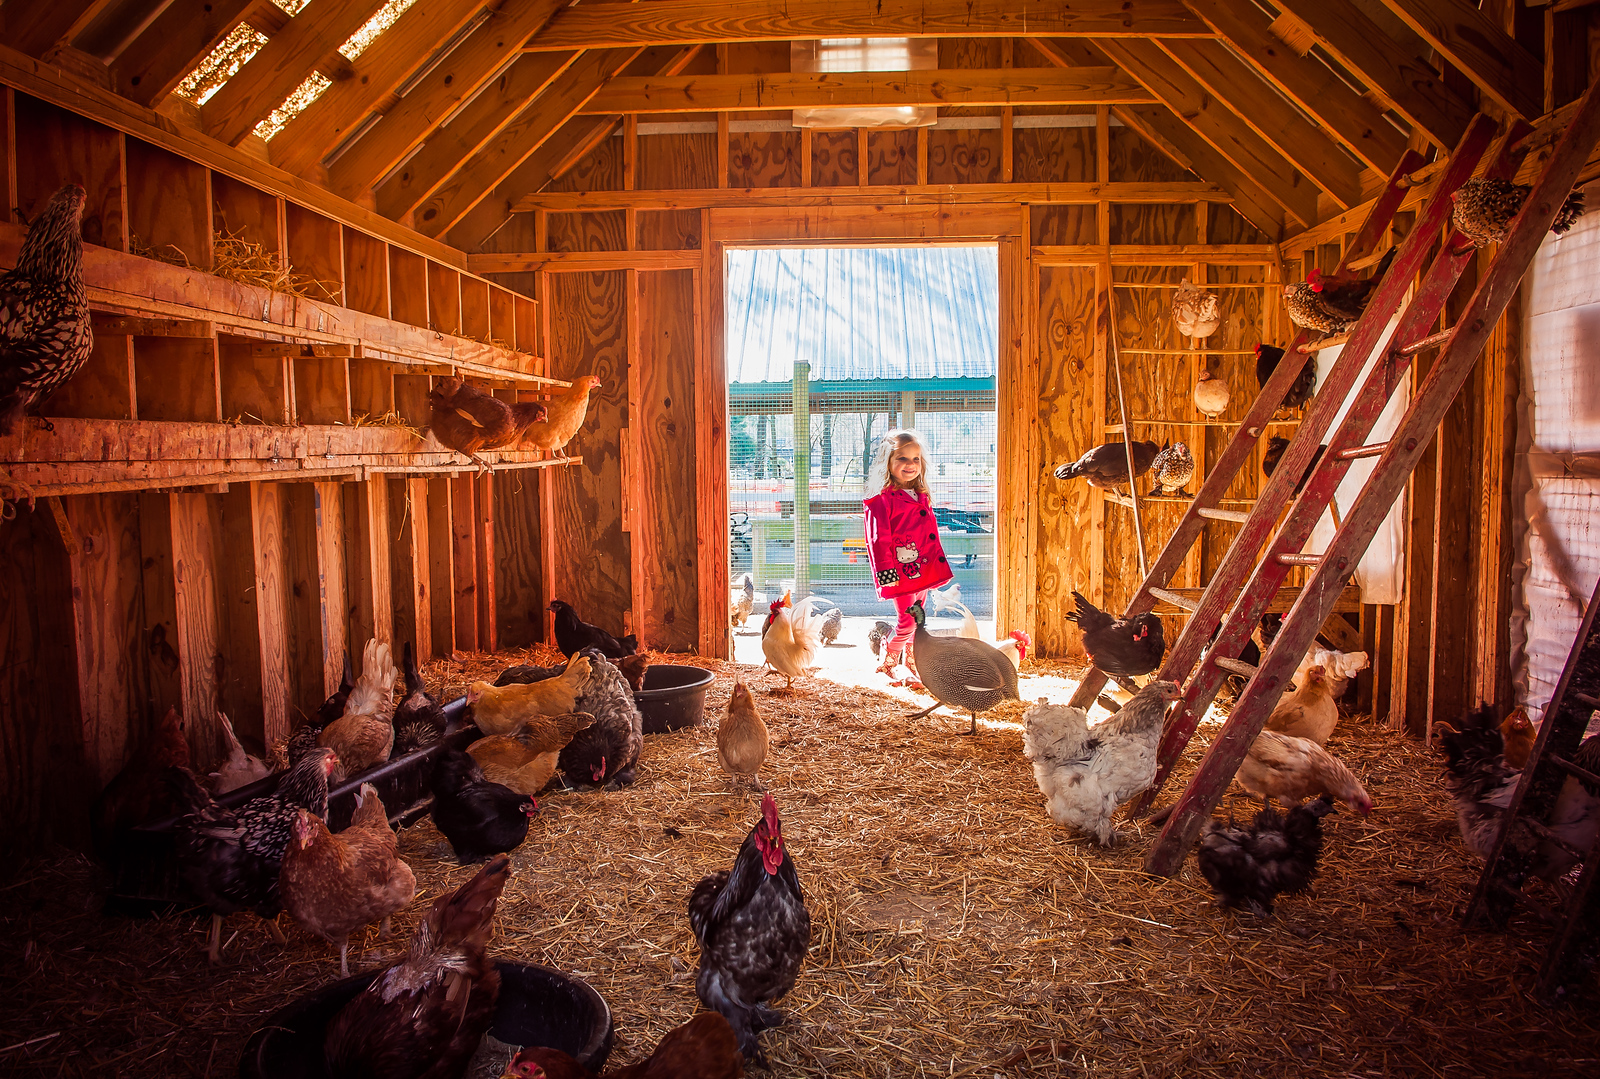 In the Chicken Coop - March 21